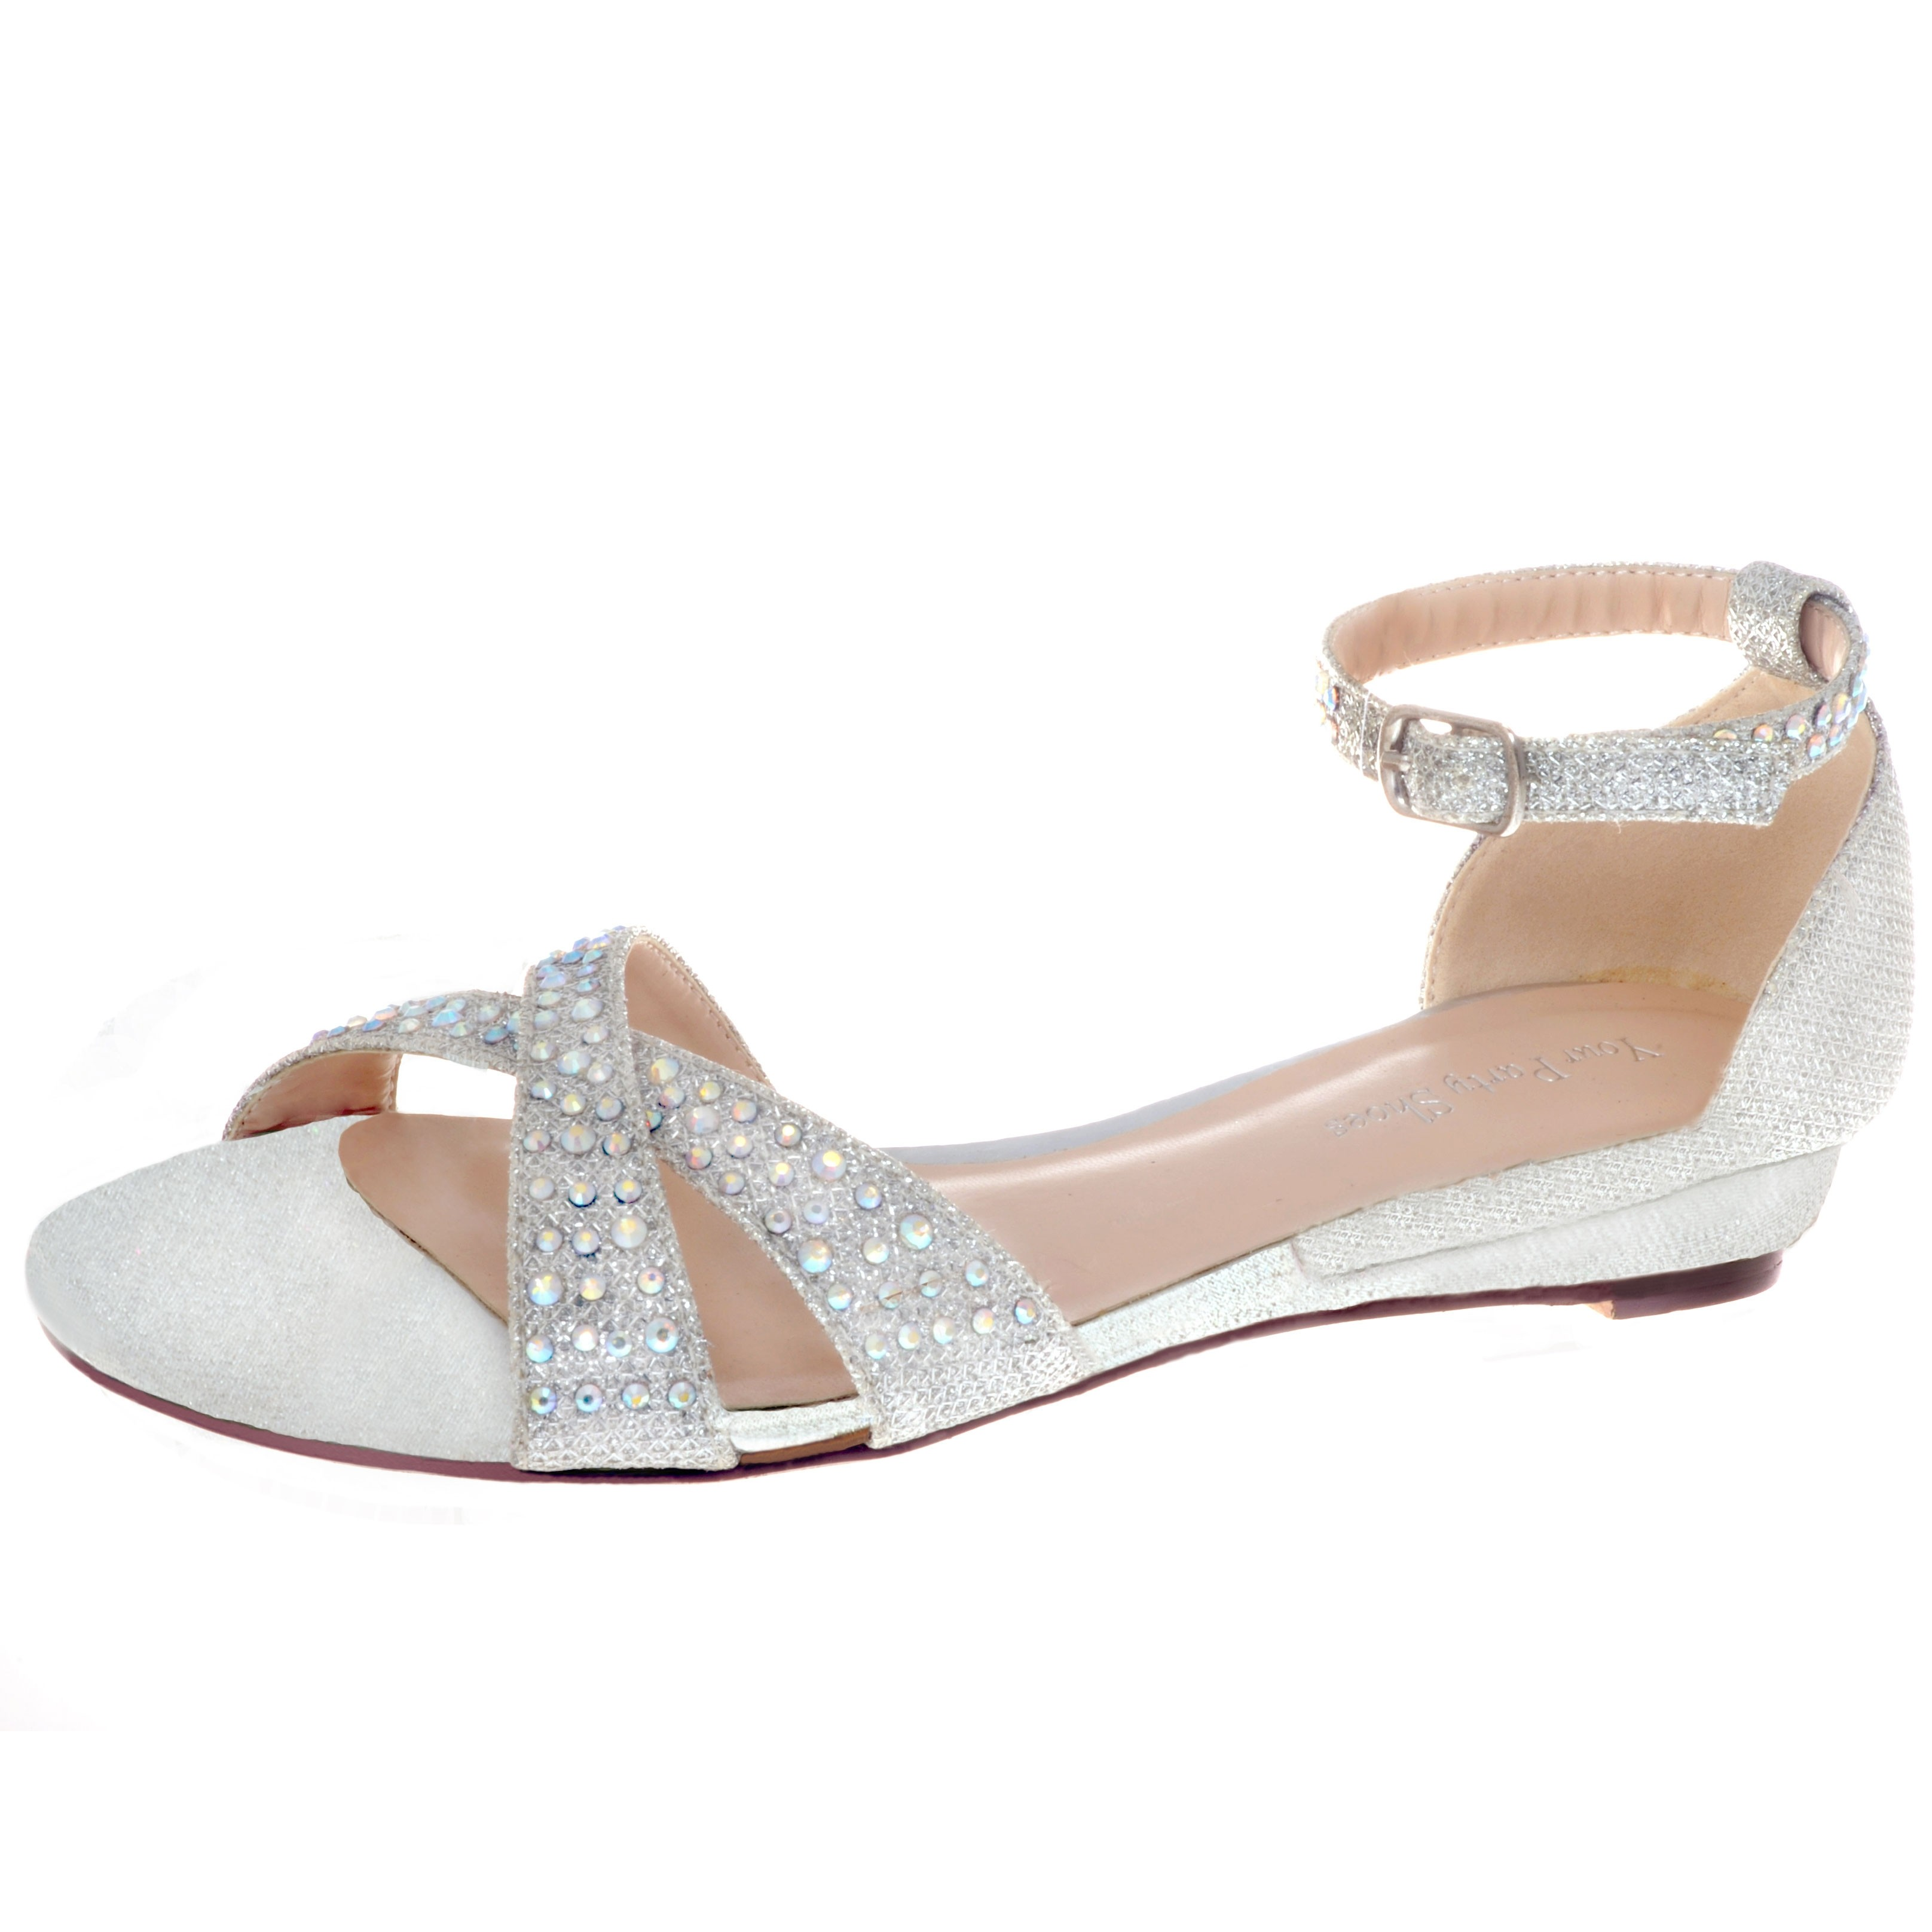 cc47c9f65232 Your Party Shoes Jeweled Ankle Strap Flat Sandal